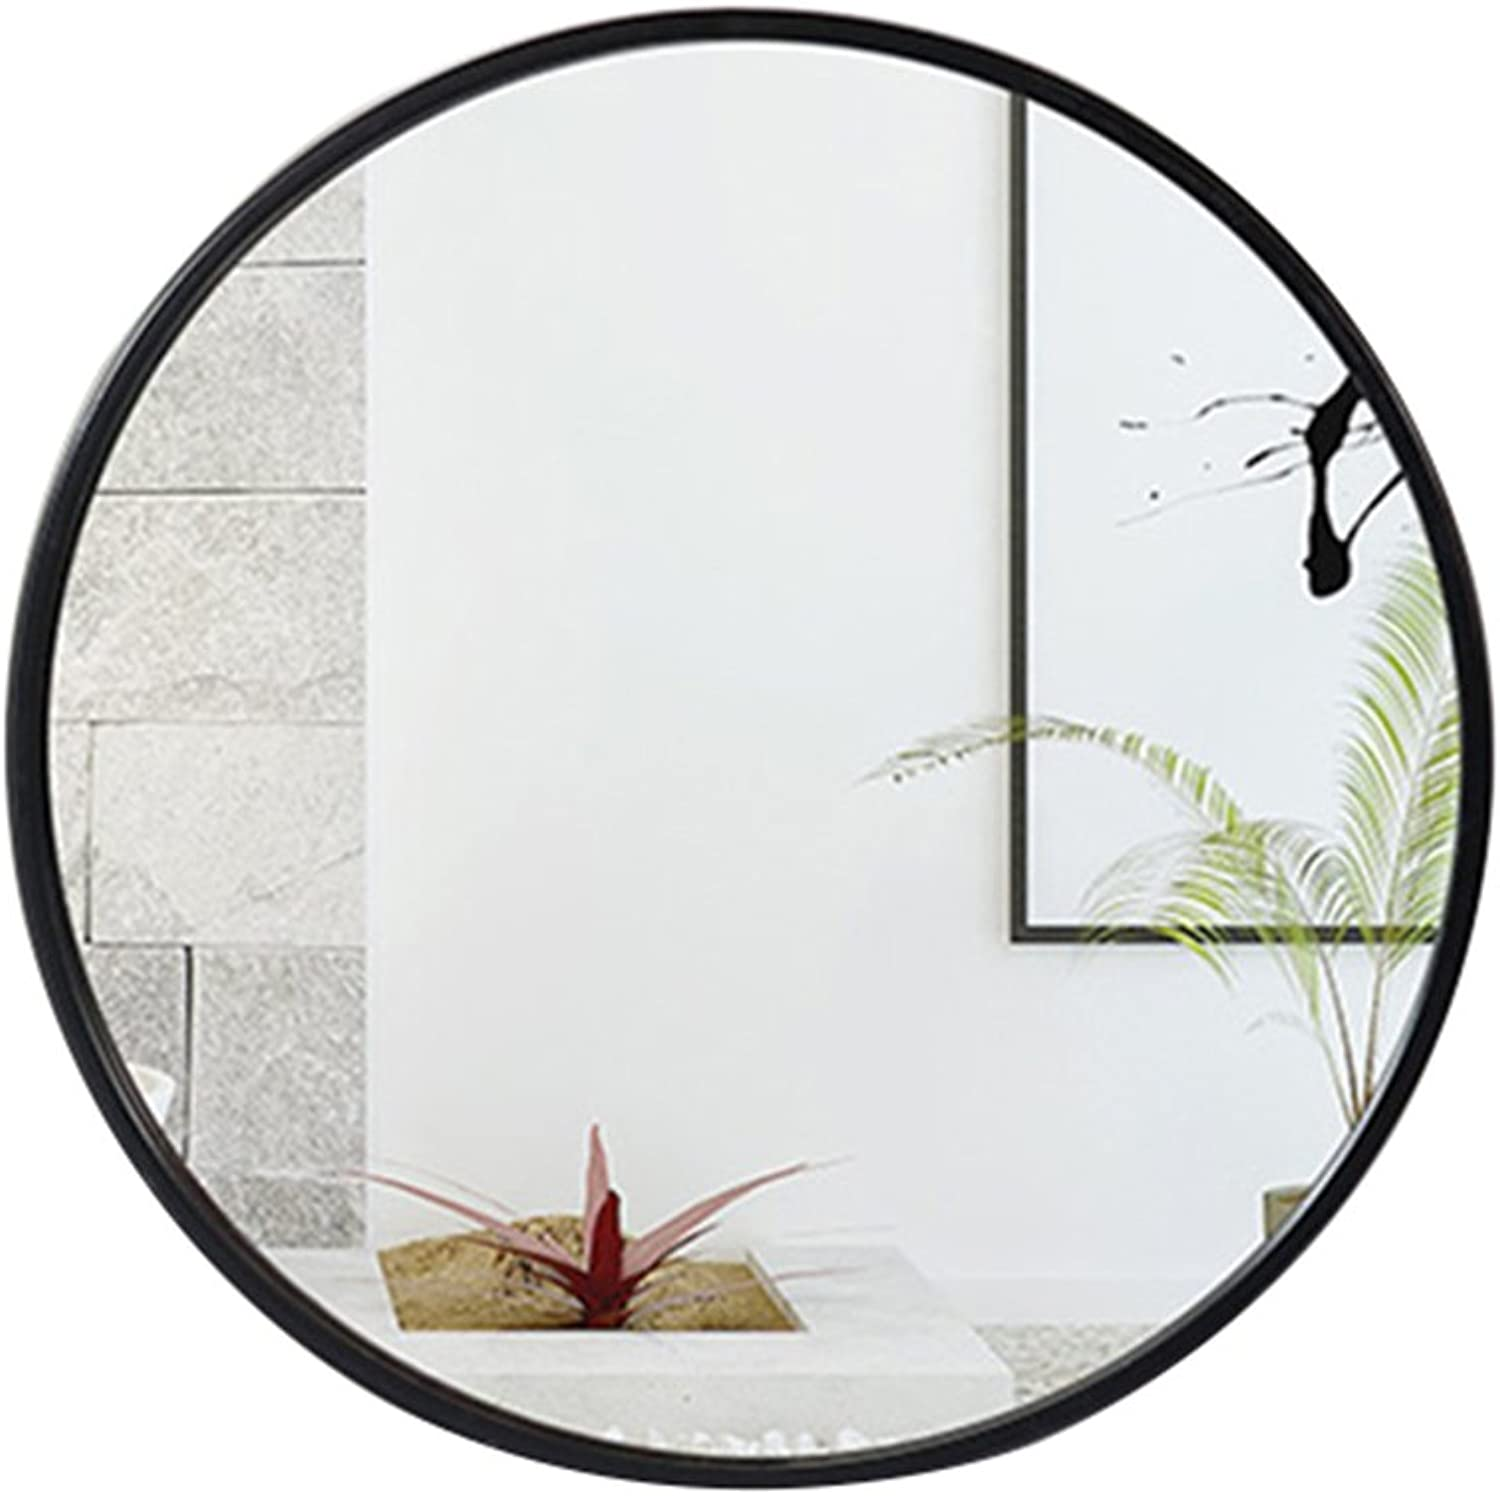 ZHBWJSH Mirror - Bathroom Mirror, Round Vanity Mirror, Wall-Mounted European Wall Mirror Wall Mount 15.7 19.6 23.6 27.5in (color   Black, Size   23.6in)